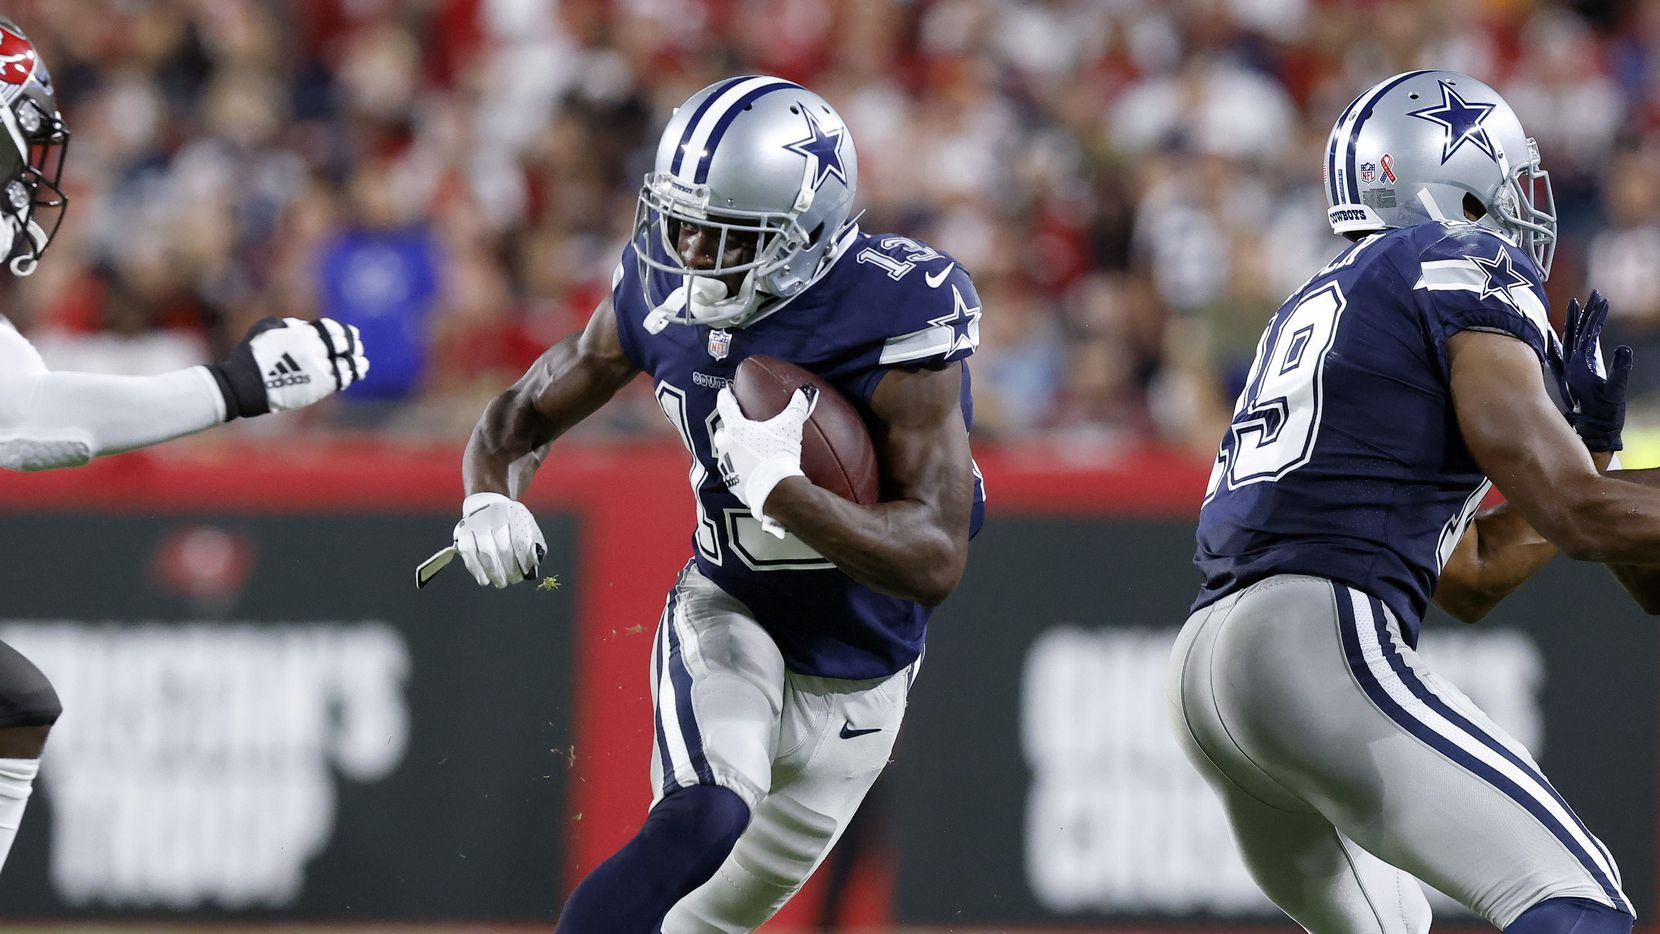 Dallas Cowboys wide receiver Michael Gallup (13) receives a block from fellow wide receiver Amari Cooper (19) during the first half at Raymond James Stadium in Tampa, Florida, Thursday, September 9, 2021. The Cowboys faced the Tampa Bay Buccaneers in the NFL season opener.